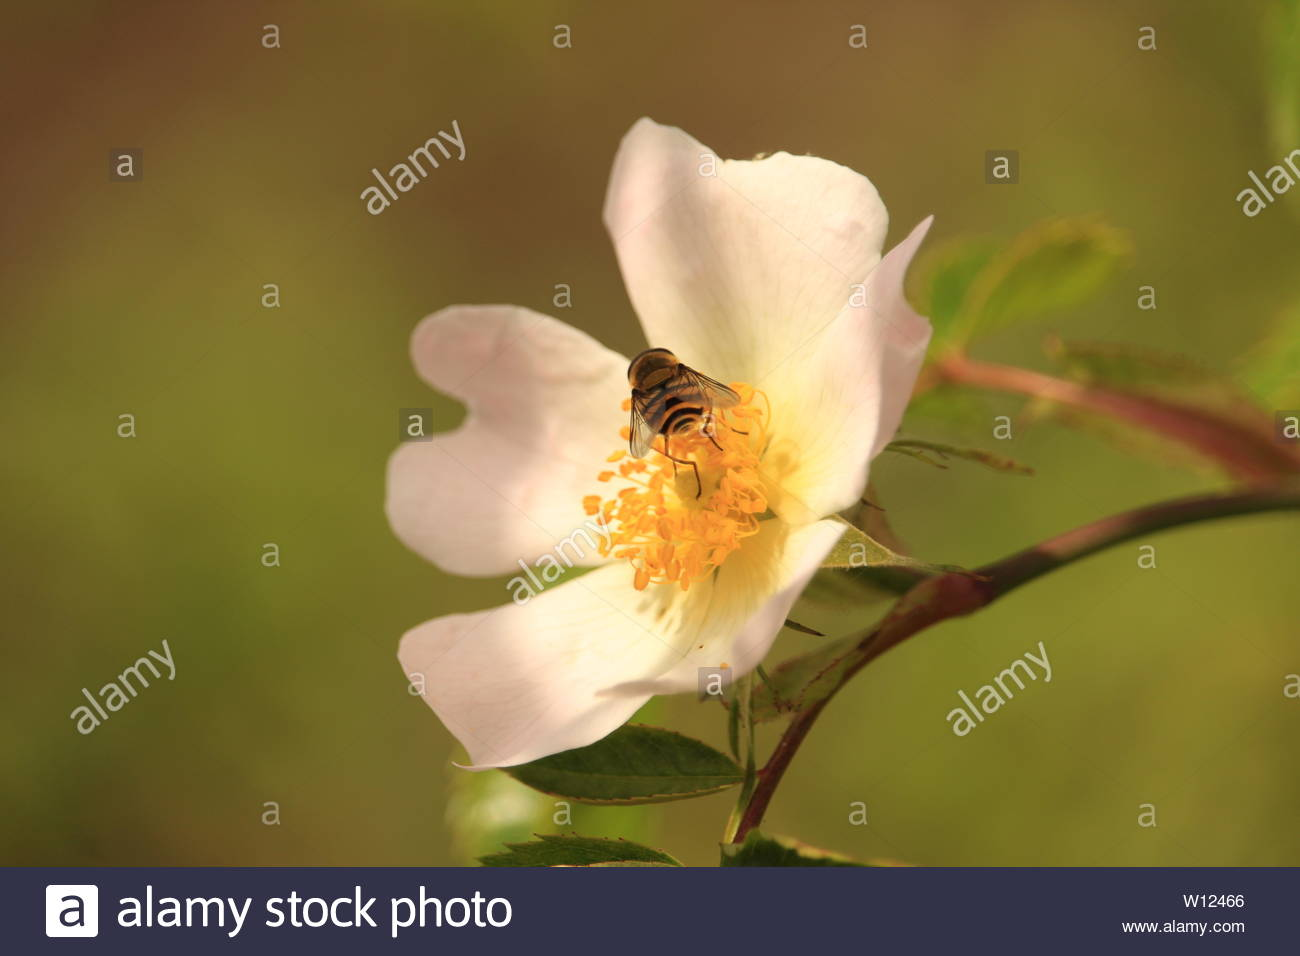 Wild Essex - A wasp gathers nectar from an apple flower blossom. - Stock Image